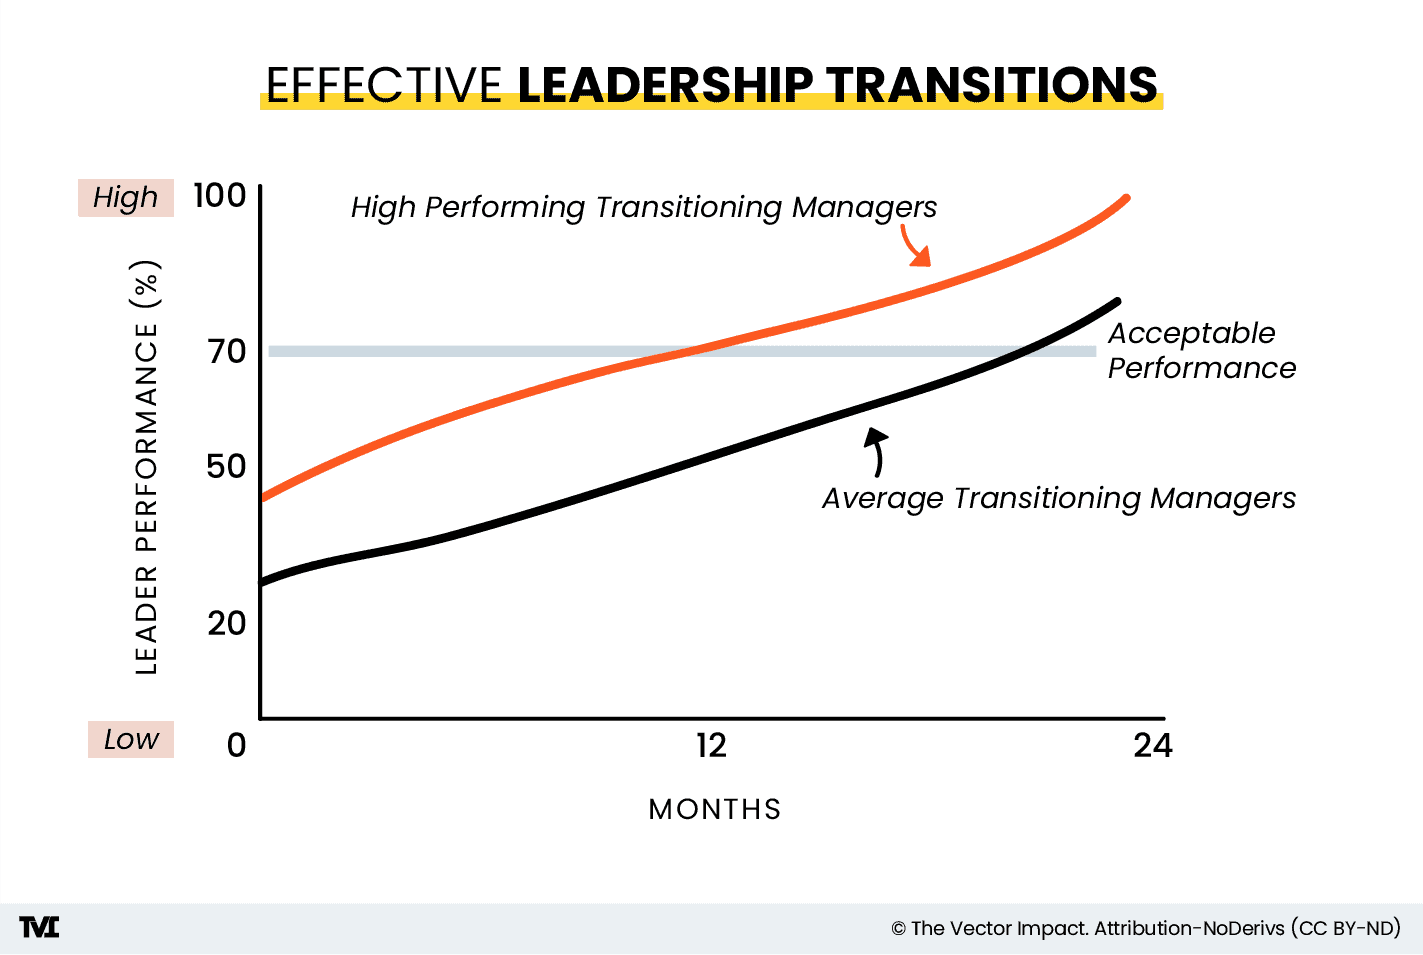 Effective Leadership Transitions, chart 3 showing a graph with the acceptable performance line (at 70 percent), a black line representing the average transitioning manager, and an orange line representing the high performing transitioning managers.